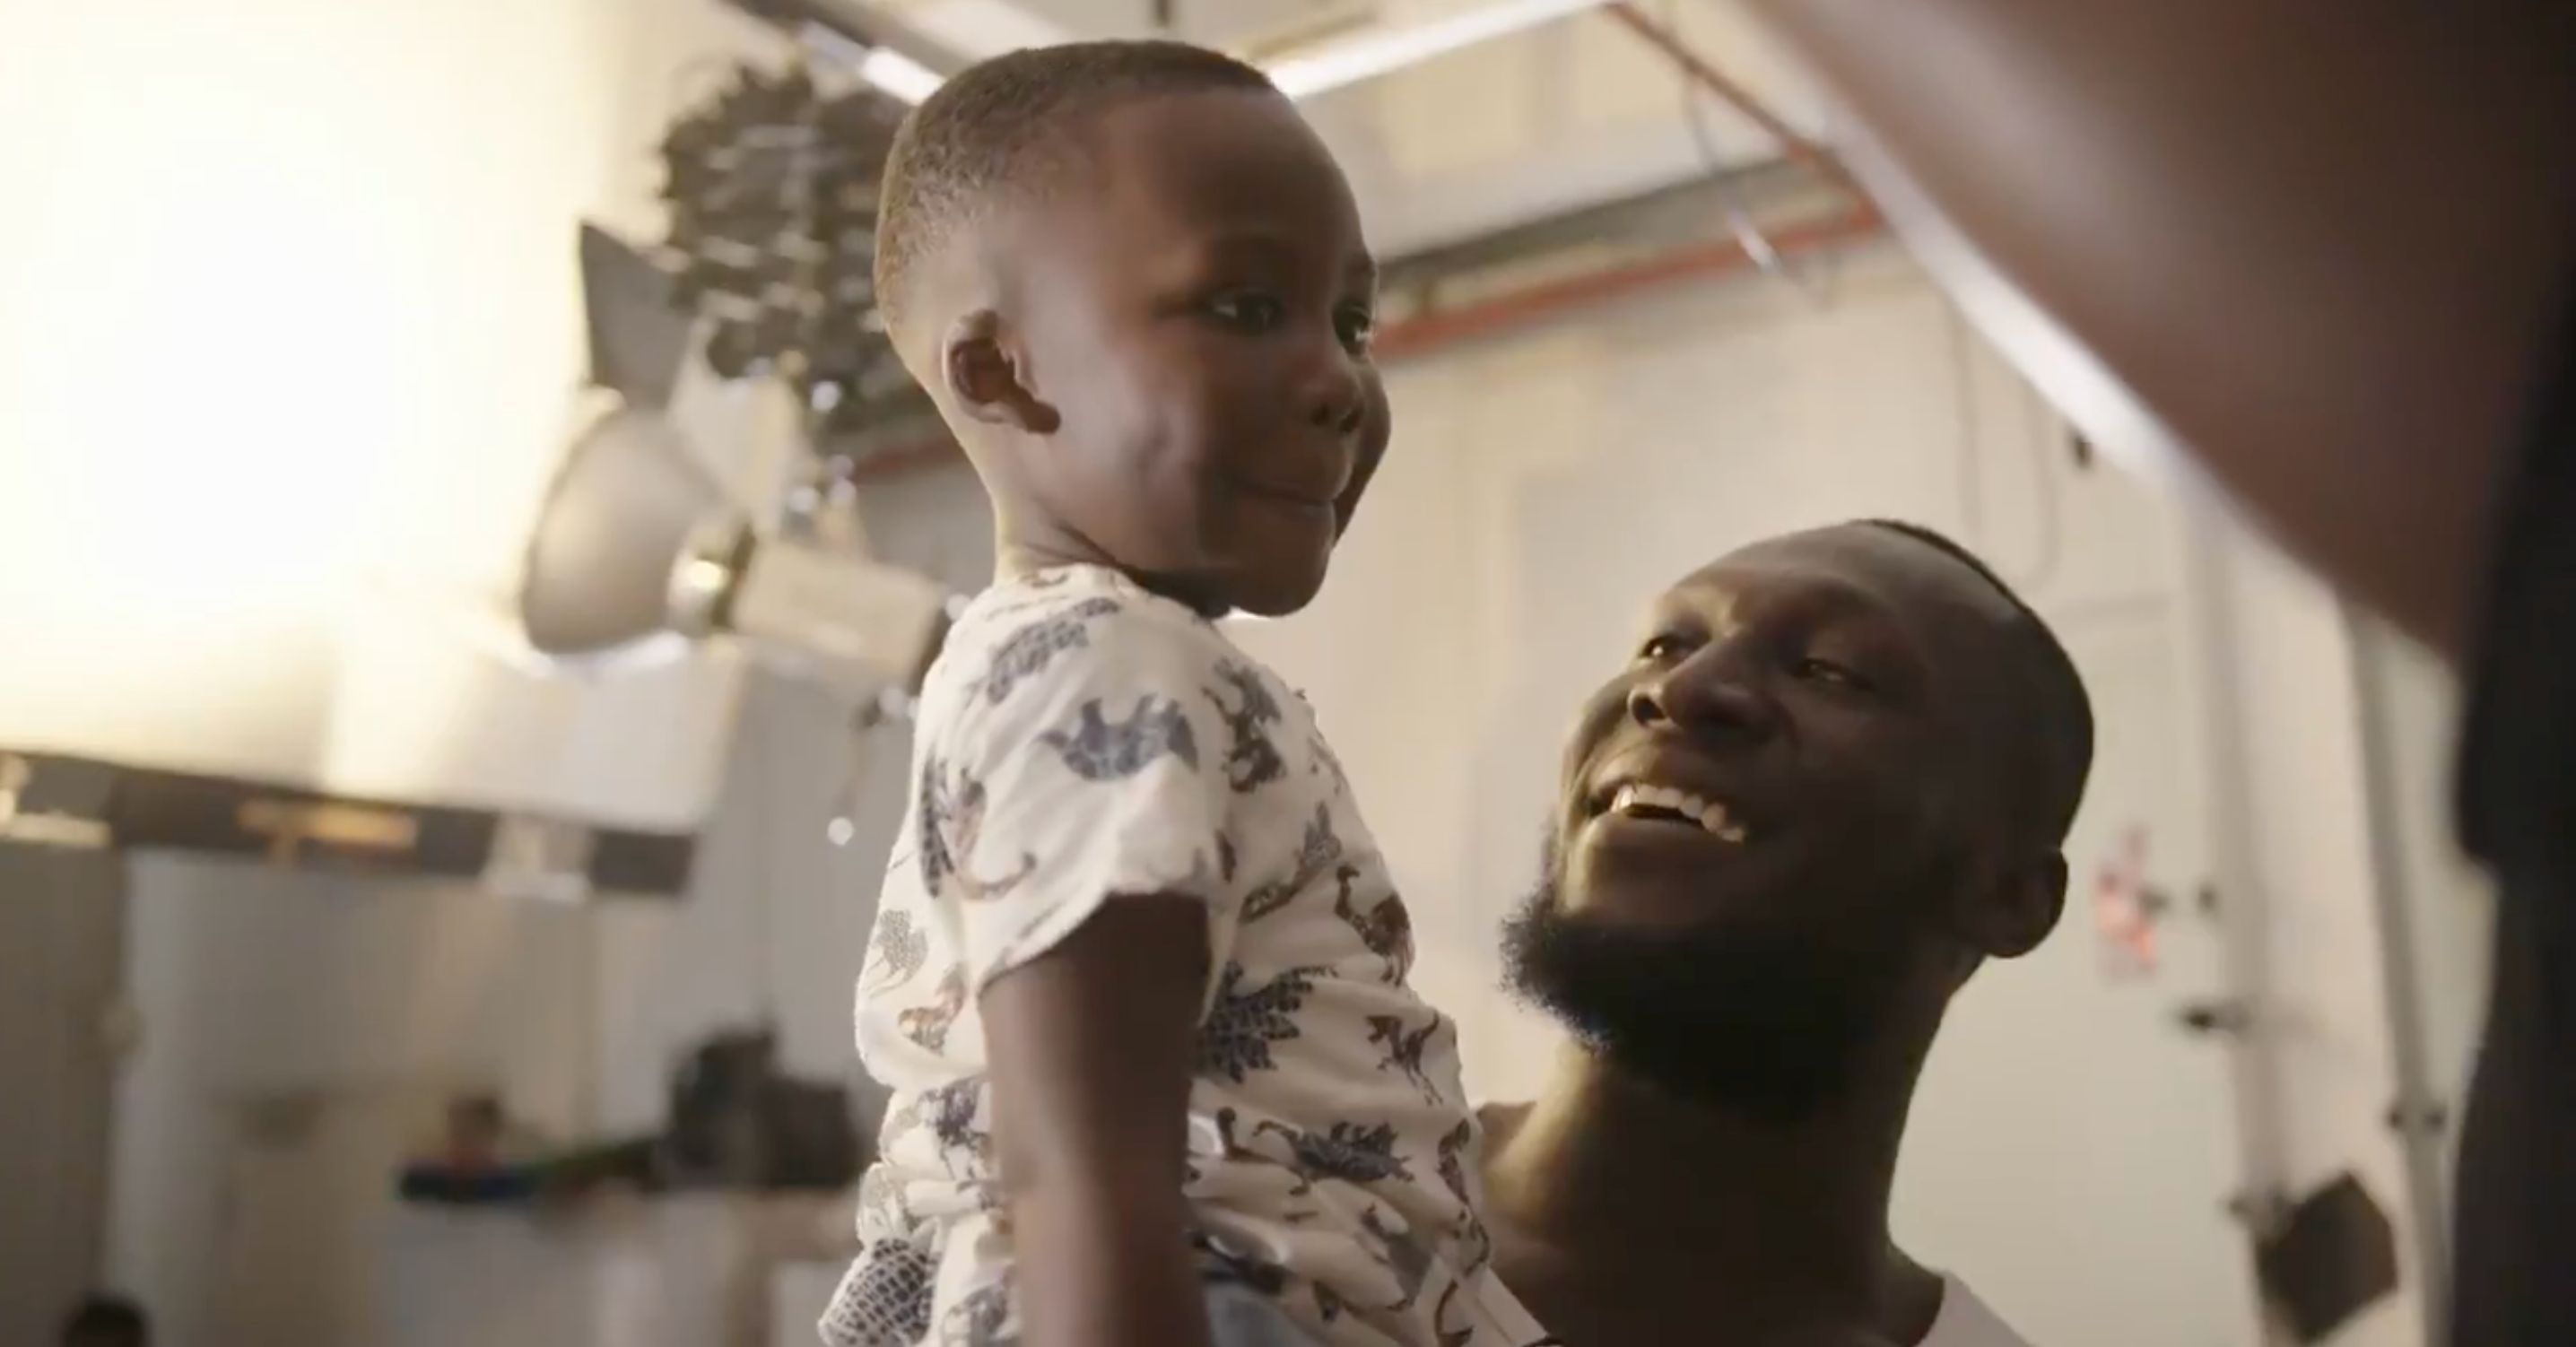 Stormzy's Nephew Can't Believe His Eyes As He Meets His Uncle's Waxwork In Adorable Video